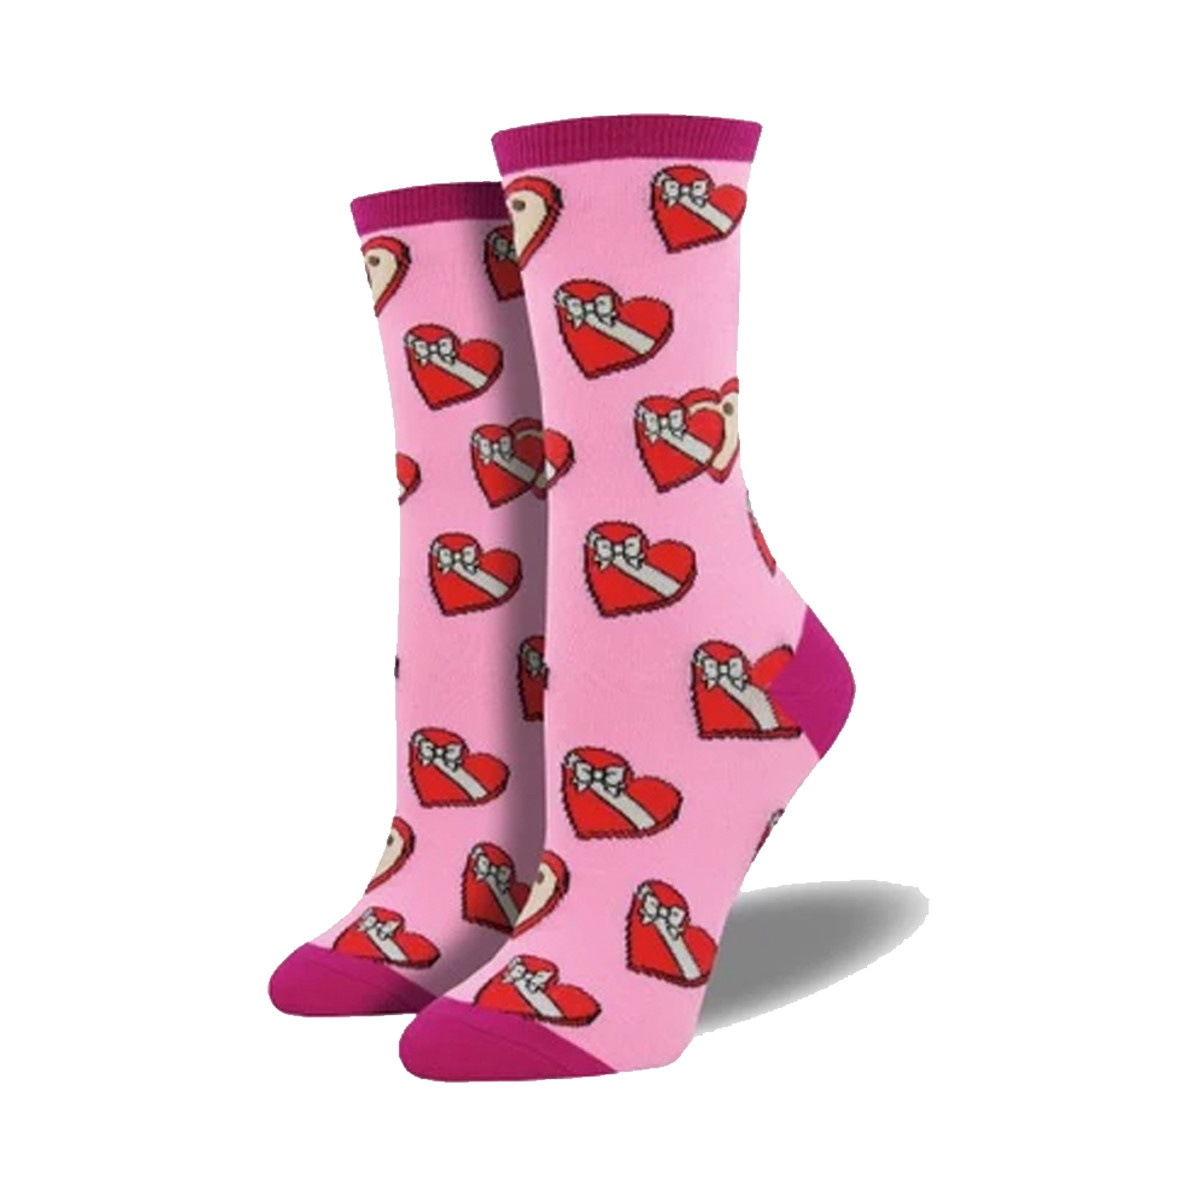 Socksmith Socksmith Women's Cotton Blend Socks Saved You Some Pink